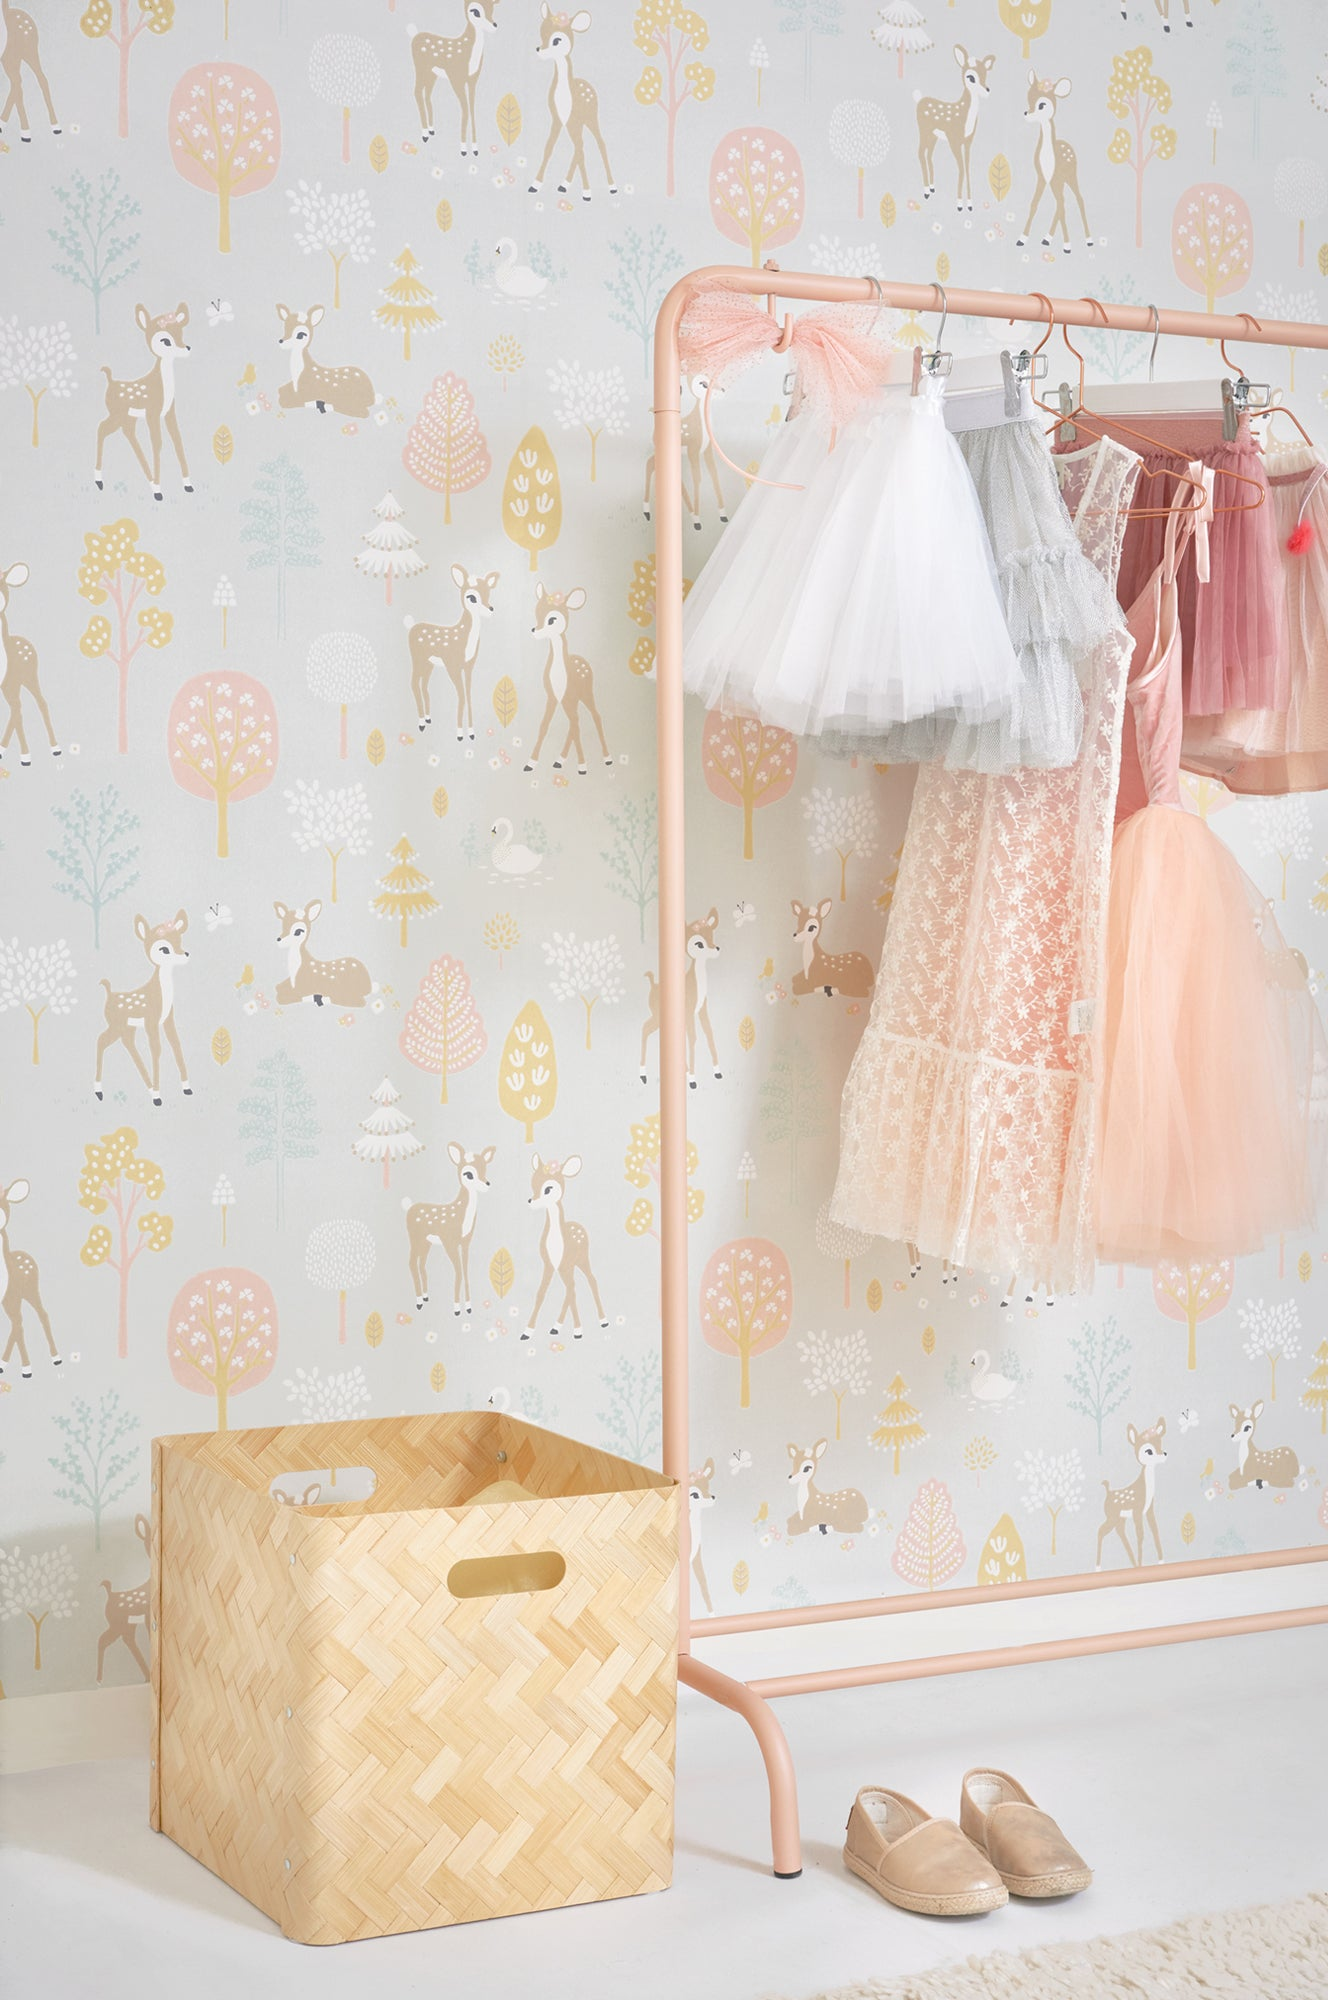 Majvillan children's wallpaper 'Golden Woods', available at Bobby Rabbit.